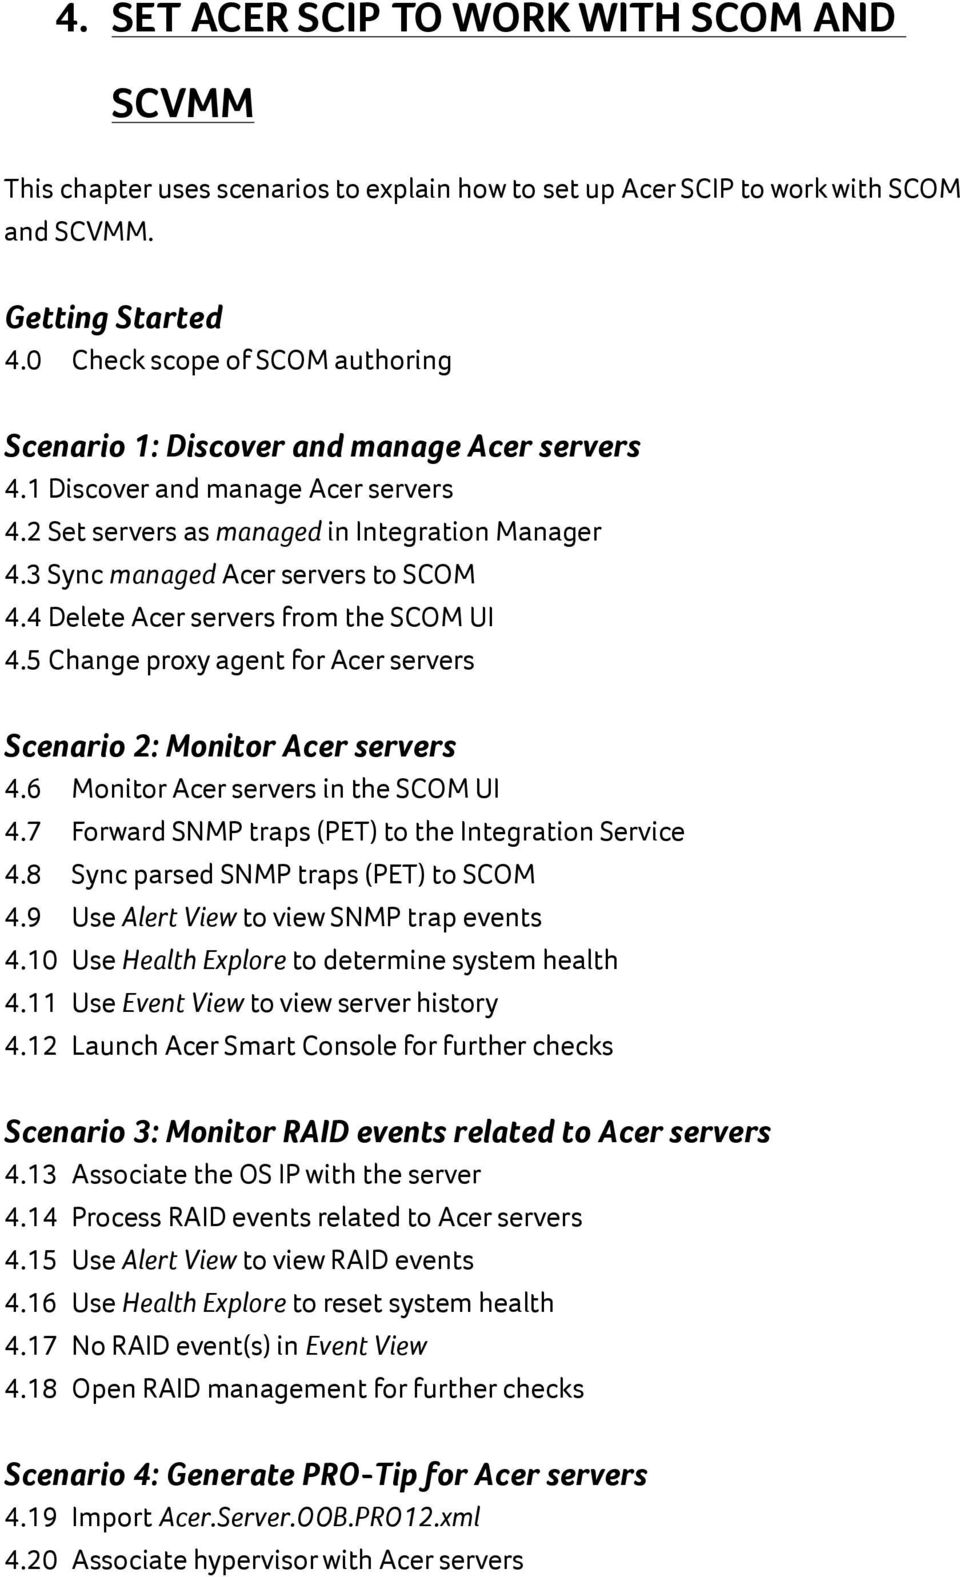 3 Sync managed Acer servers to SCOM 4.4 Delete Acer servers from the SCOM UI 4.5 Change proxy agent for Acer servers Scenario 2: Monitor Acer servers 4.6 Monitor Acer servers in the SCOM UI 4.